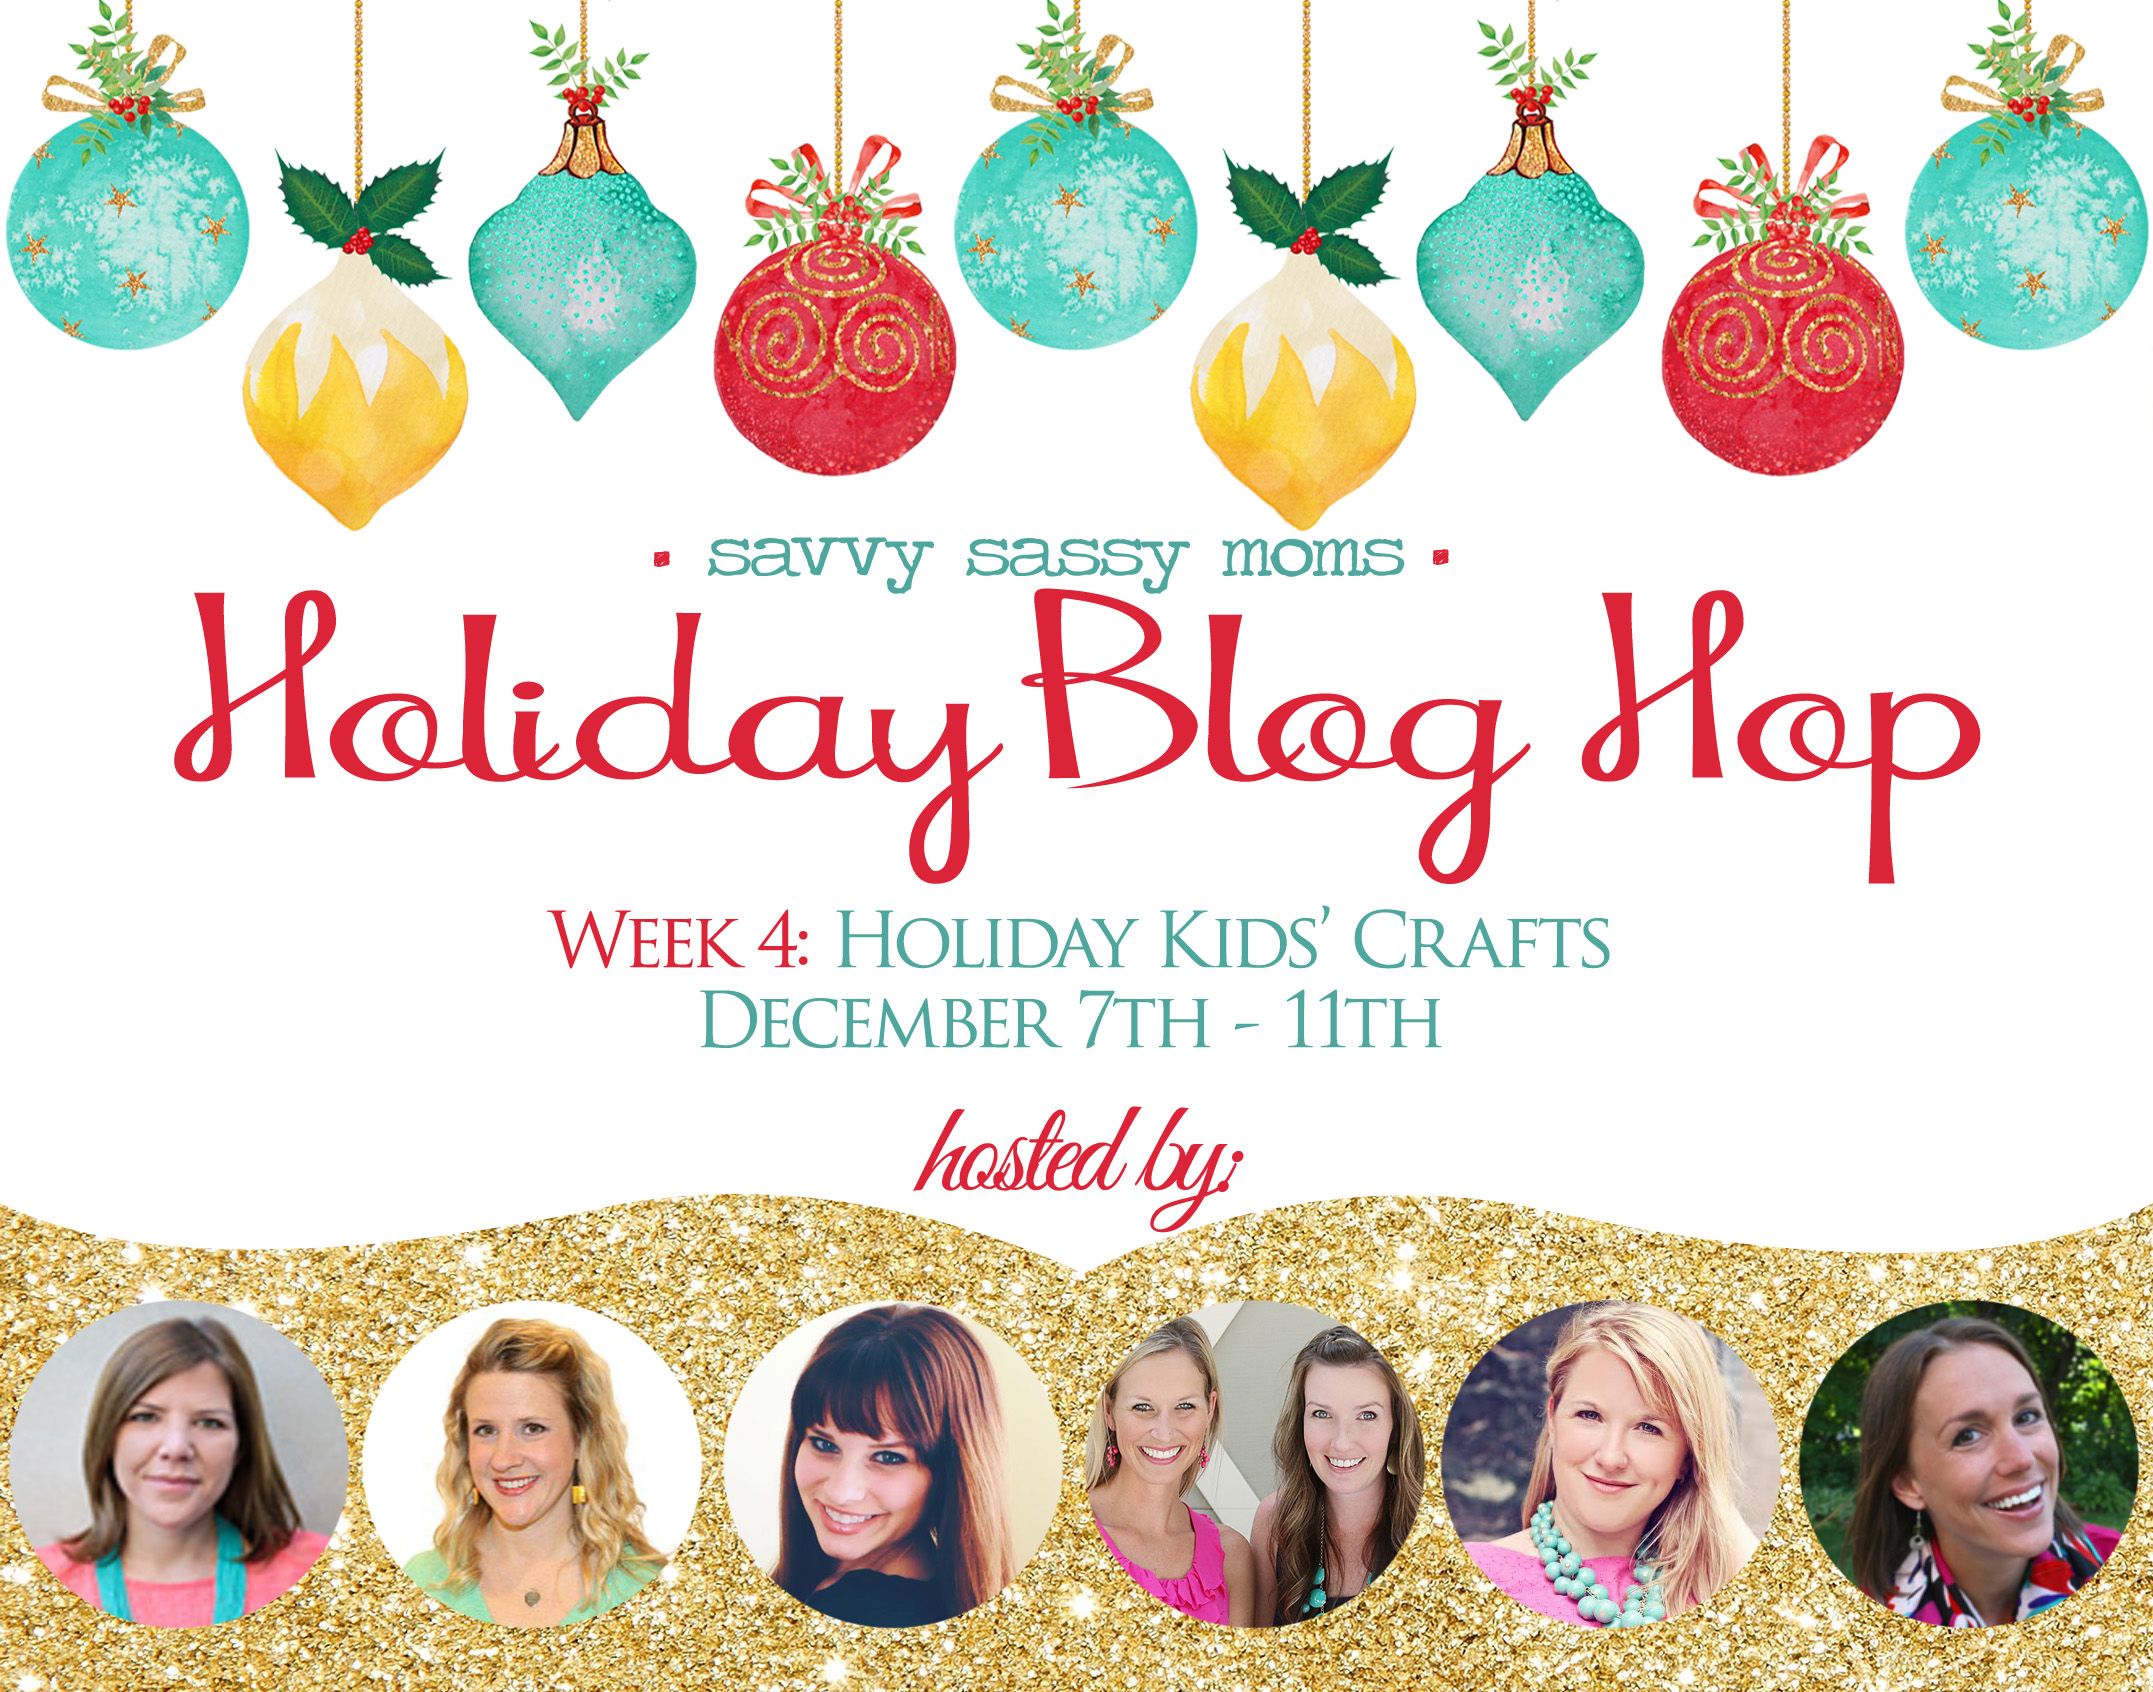 Holiday Blog Hop Week 4